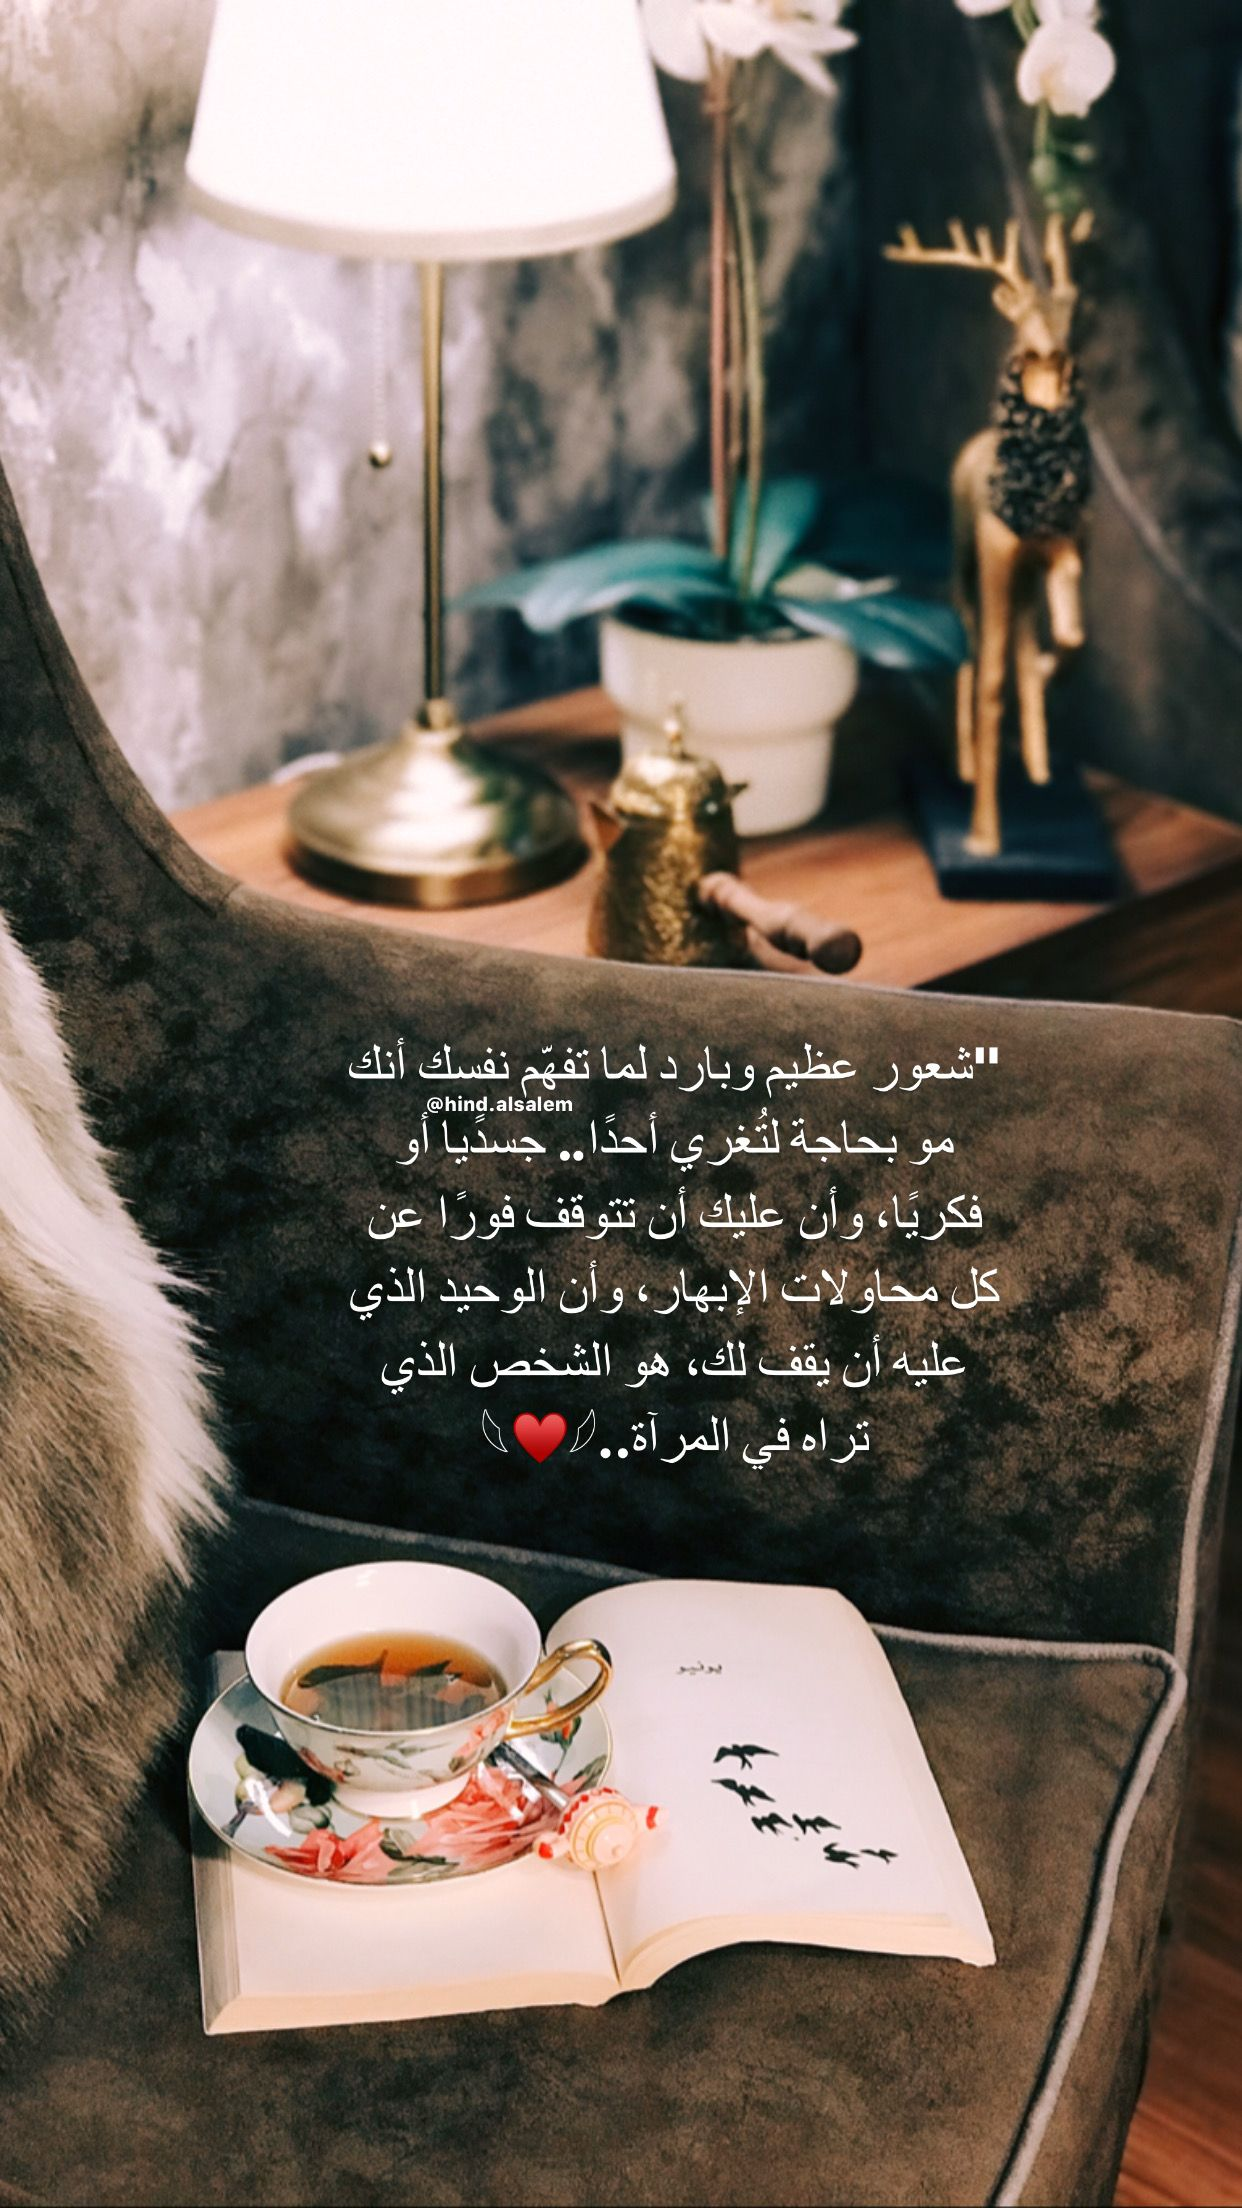 Pin By Laila Rashed On سناب شات Iphone Wallpaper Quotes Love Picture Quotes Aesthetic Iphone Wallpaper